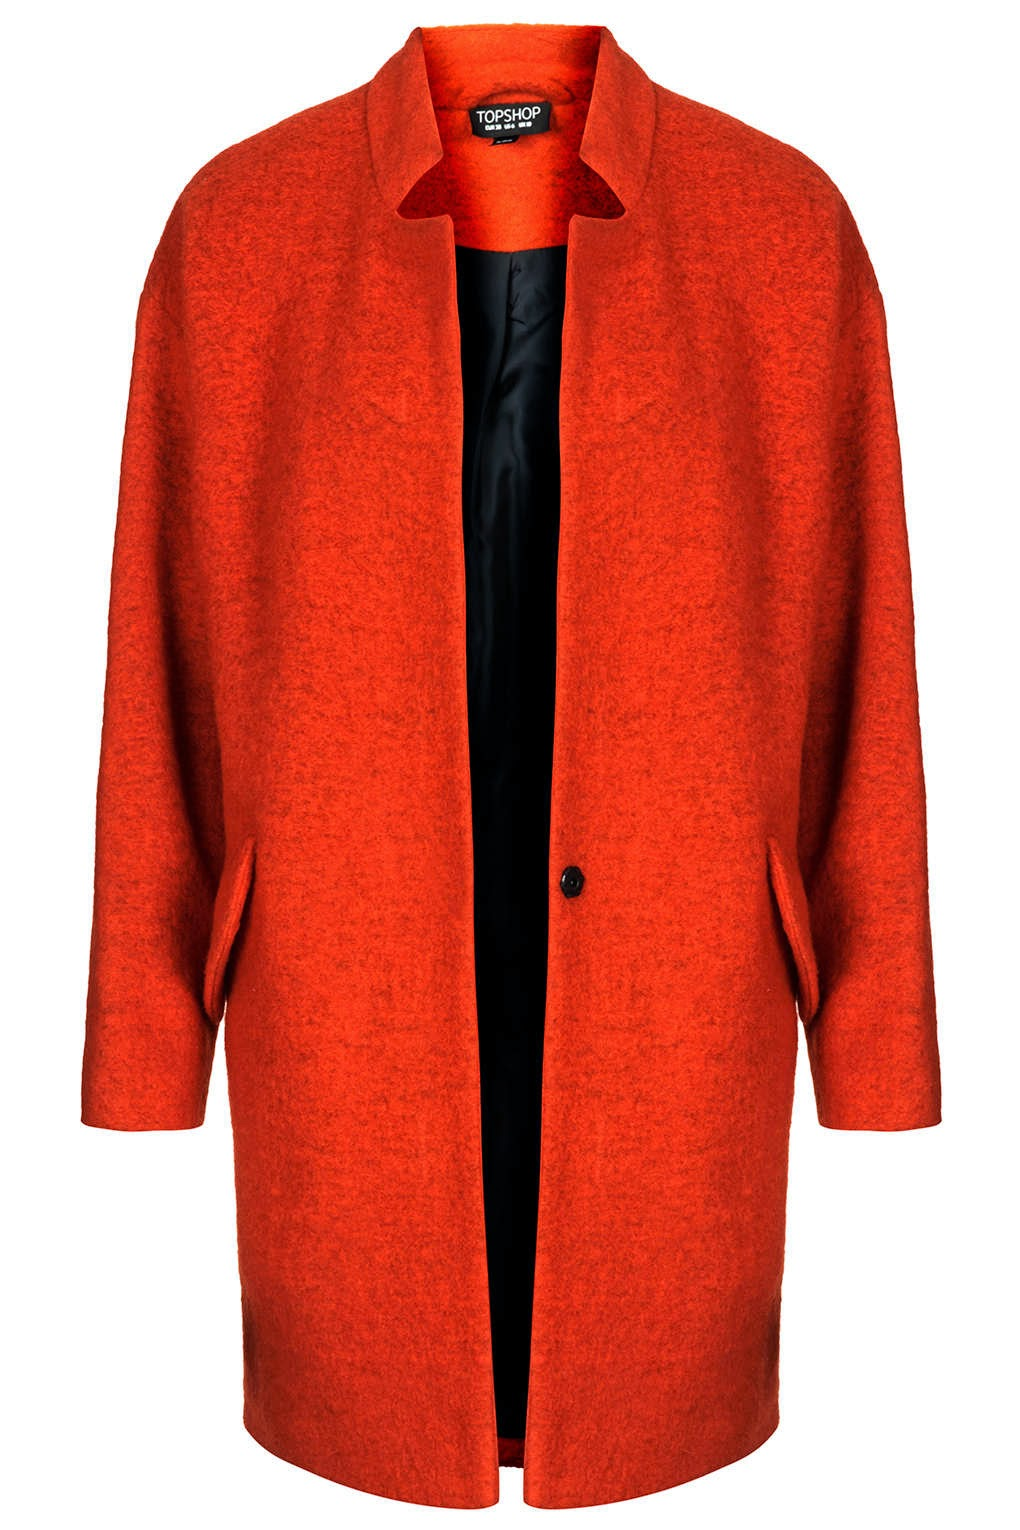 topshop red coat